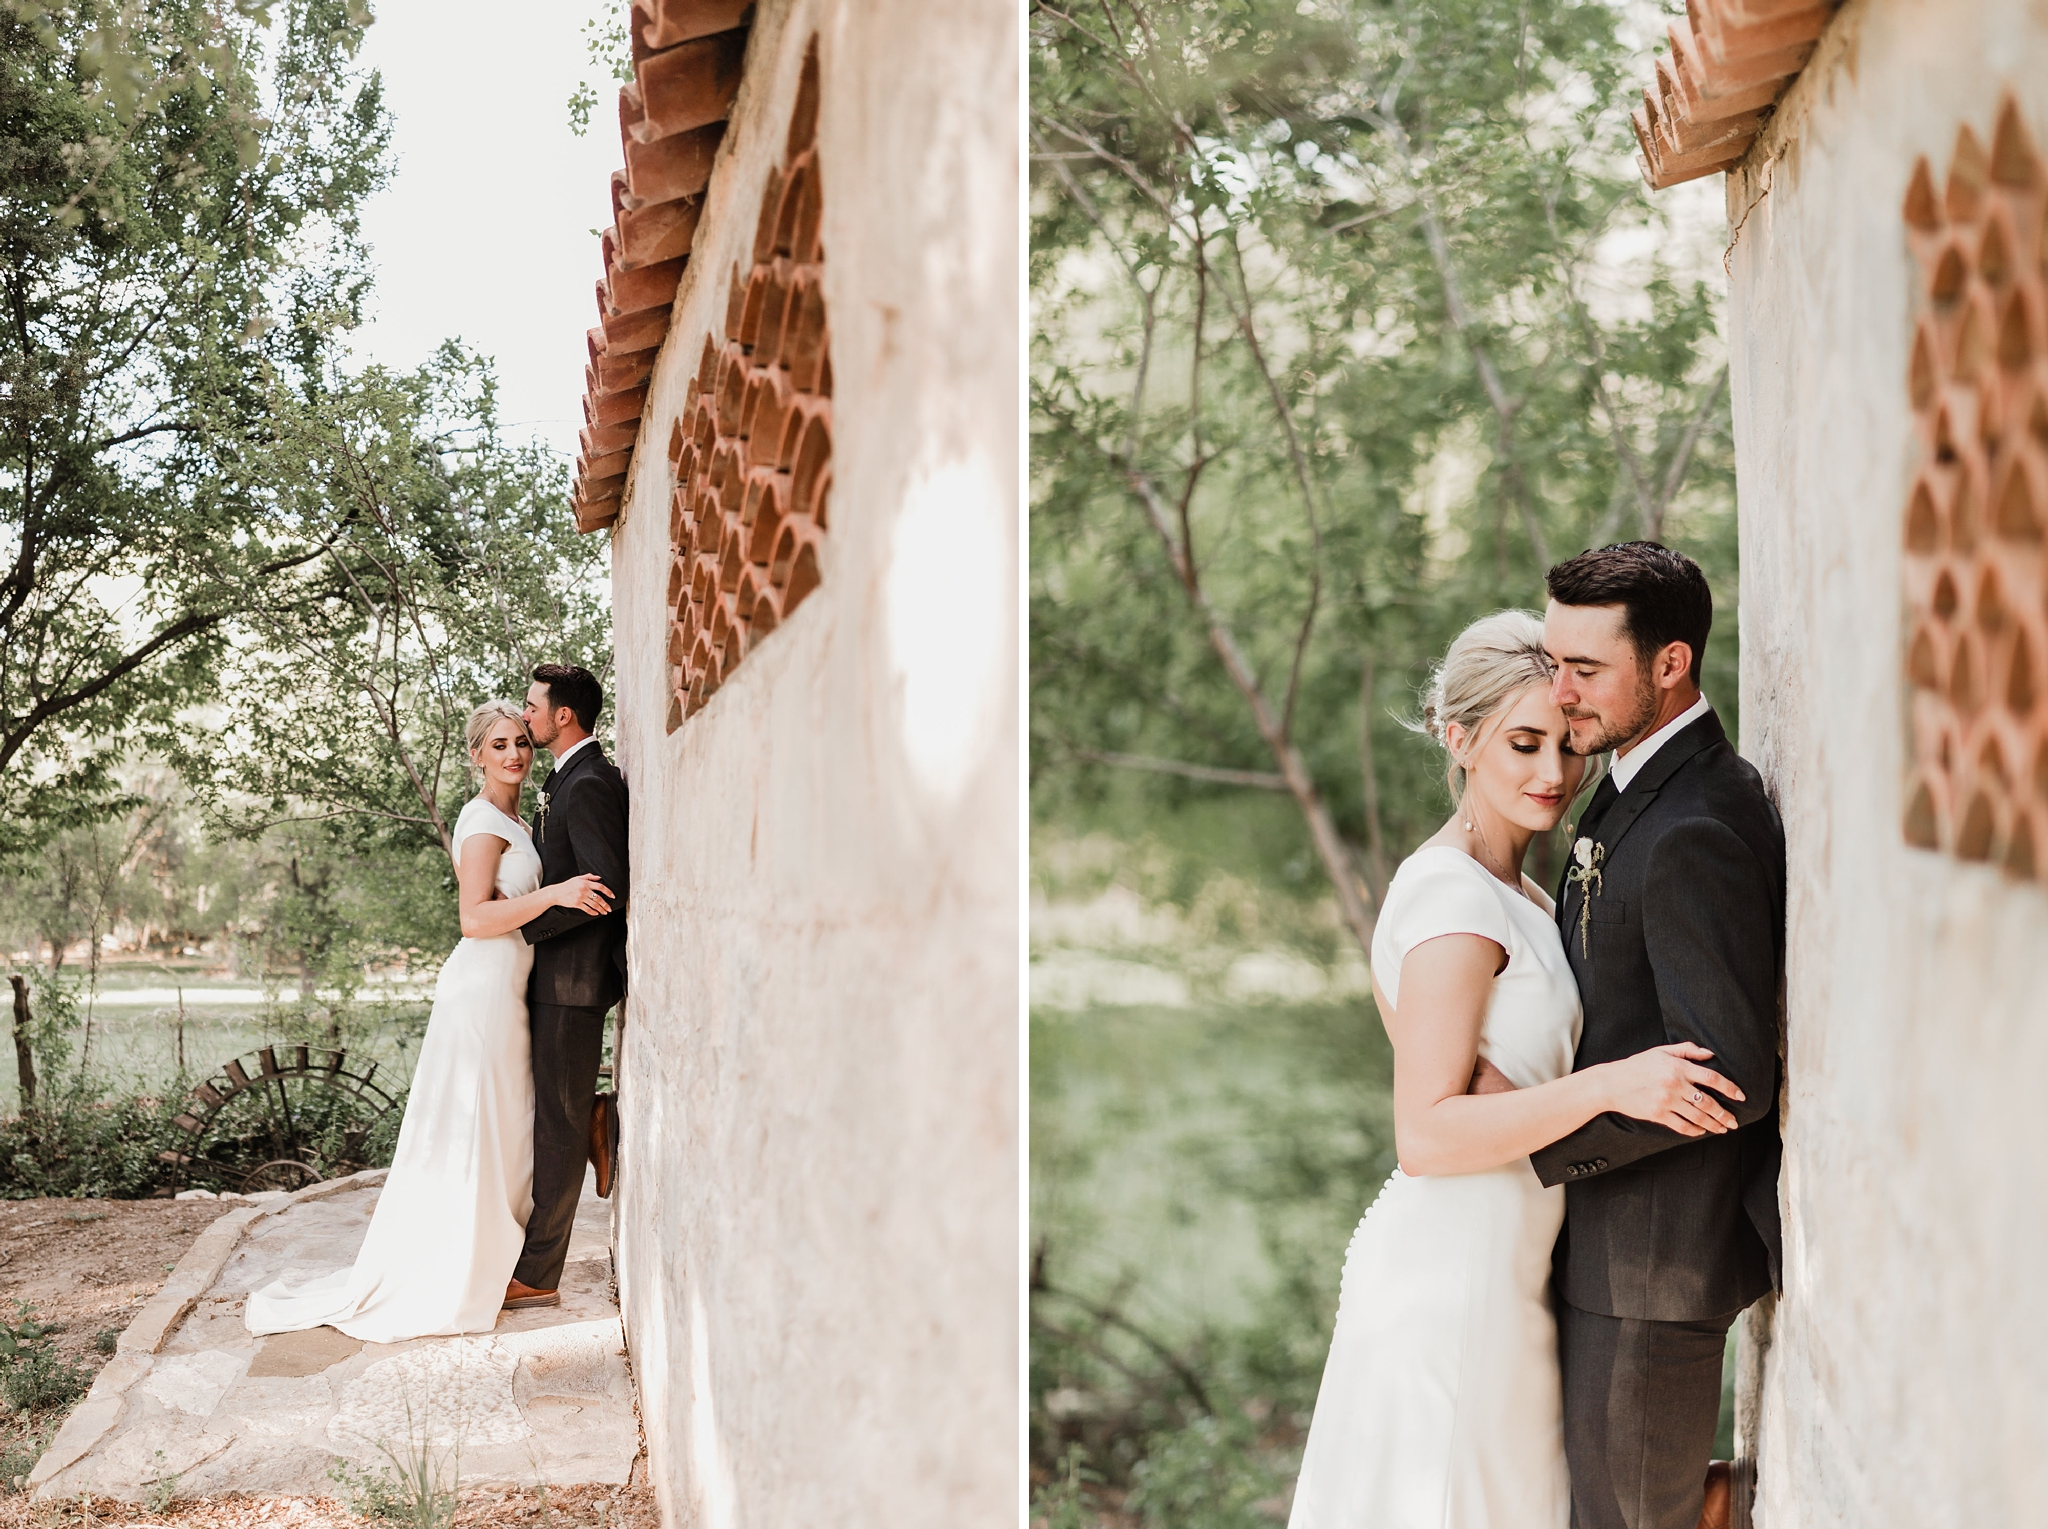 Alicia+lucia+photography+-+albuquerque+wedding+photographer+-+santa+fe+wedding+photography+-+new+mexico+wedding+photographer+-+new+mexico+wedding+-+ruidoso+wedding+-+southern+new+mexico+wedding+-+san+patricio+wedding+-+spring+wedding_0115.jpg